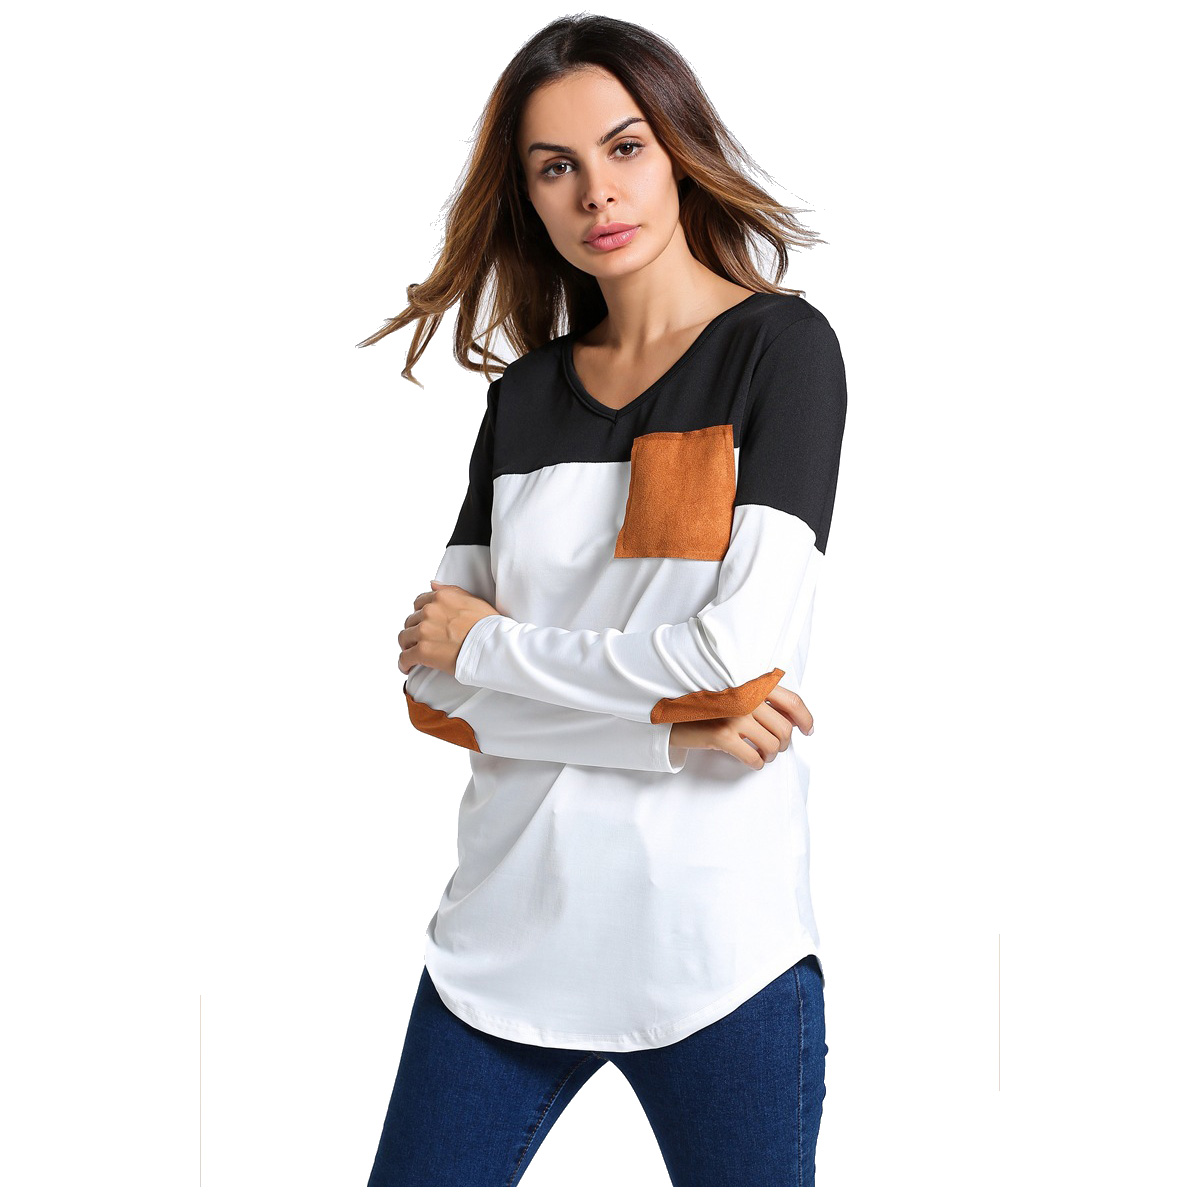 Women New T Shirt Tops Funny Shirt Casual O Neck Long Sleeve Elbow Patch Contrast Color Patchwork Tops